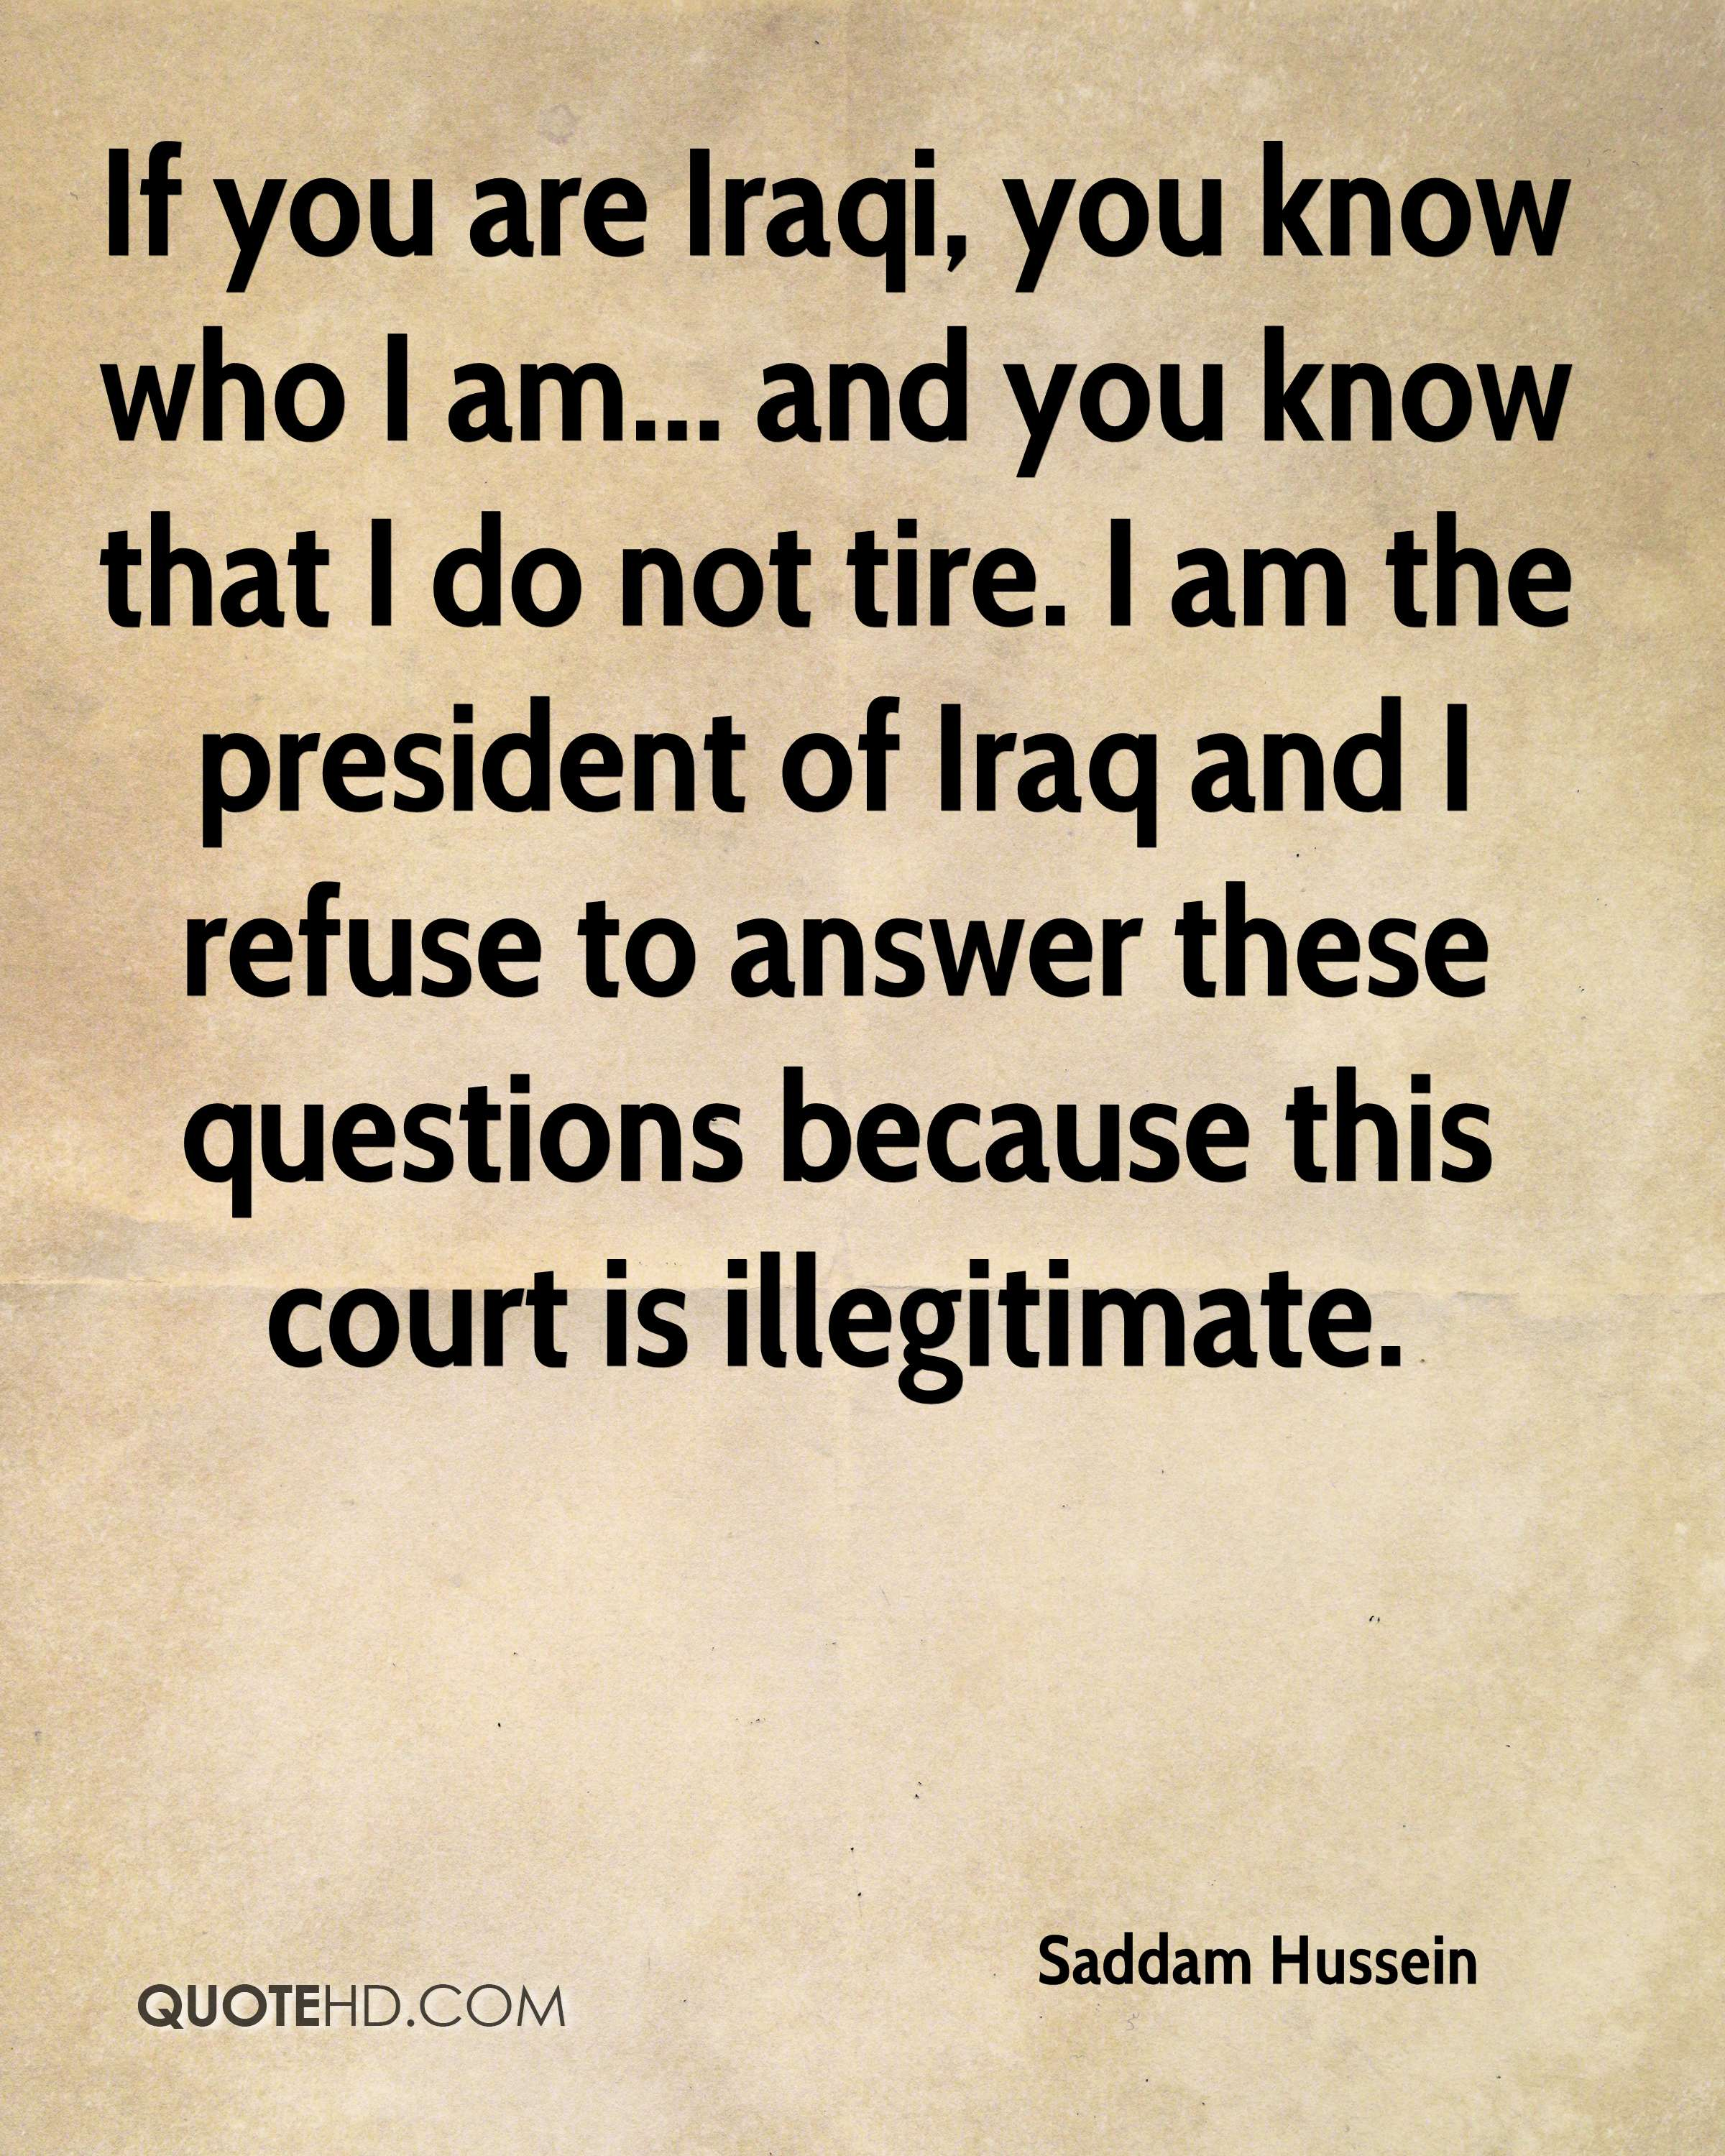 If you are Iraqi, you know who I am... and you know that I do not tire. I am the president of Iraq and I refuse to answer these questions because this court is illegitimate.